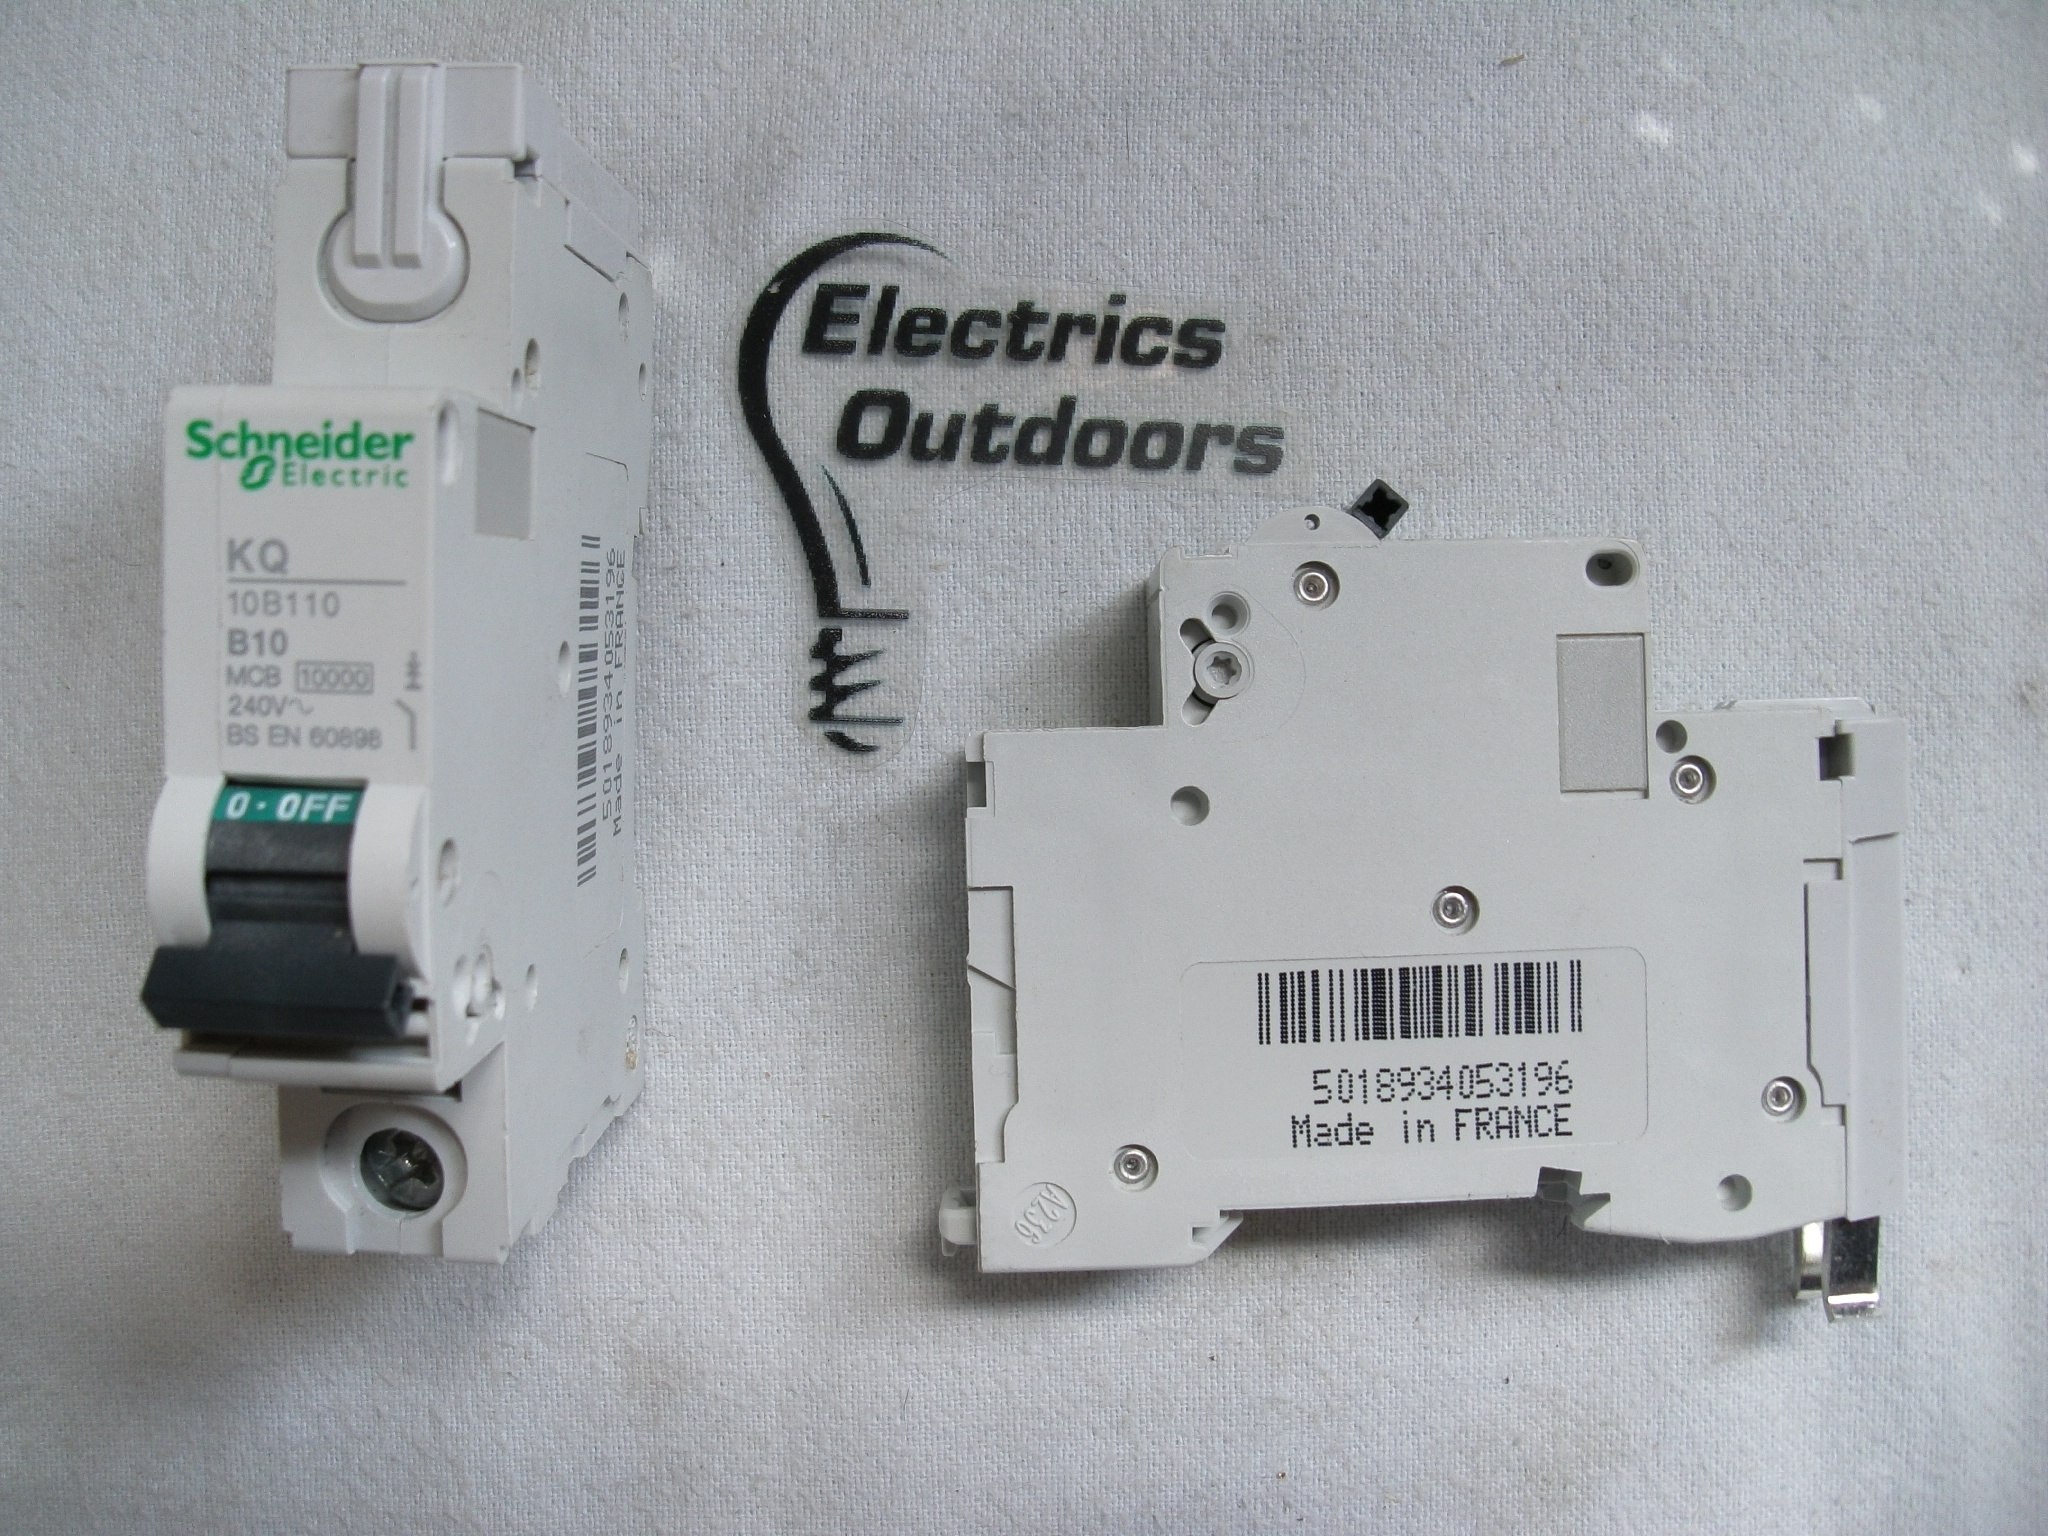 SCHNEIDER ELECTRIC 10 AMP TYPE B 10 kA MCB CIRCUIT BREAKER KQ 10B110 BS EN 60898